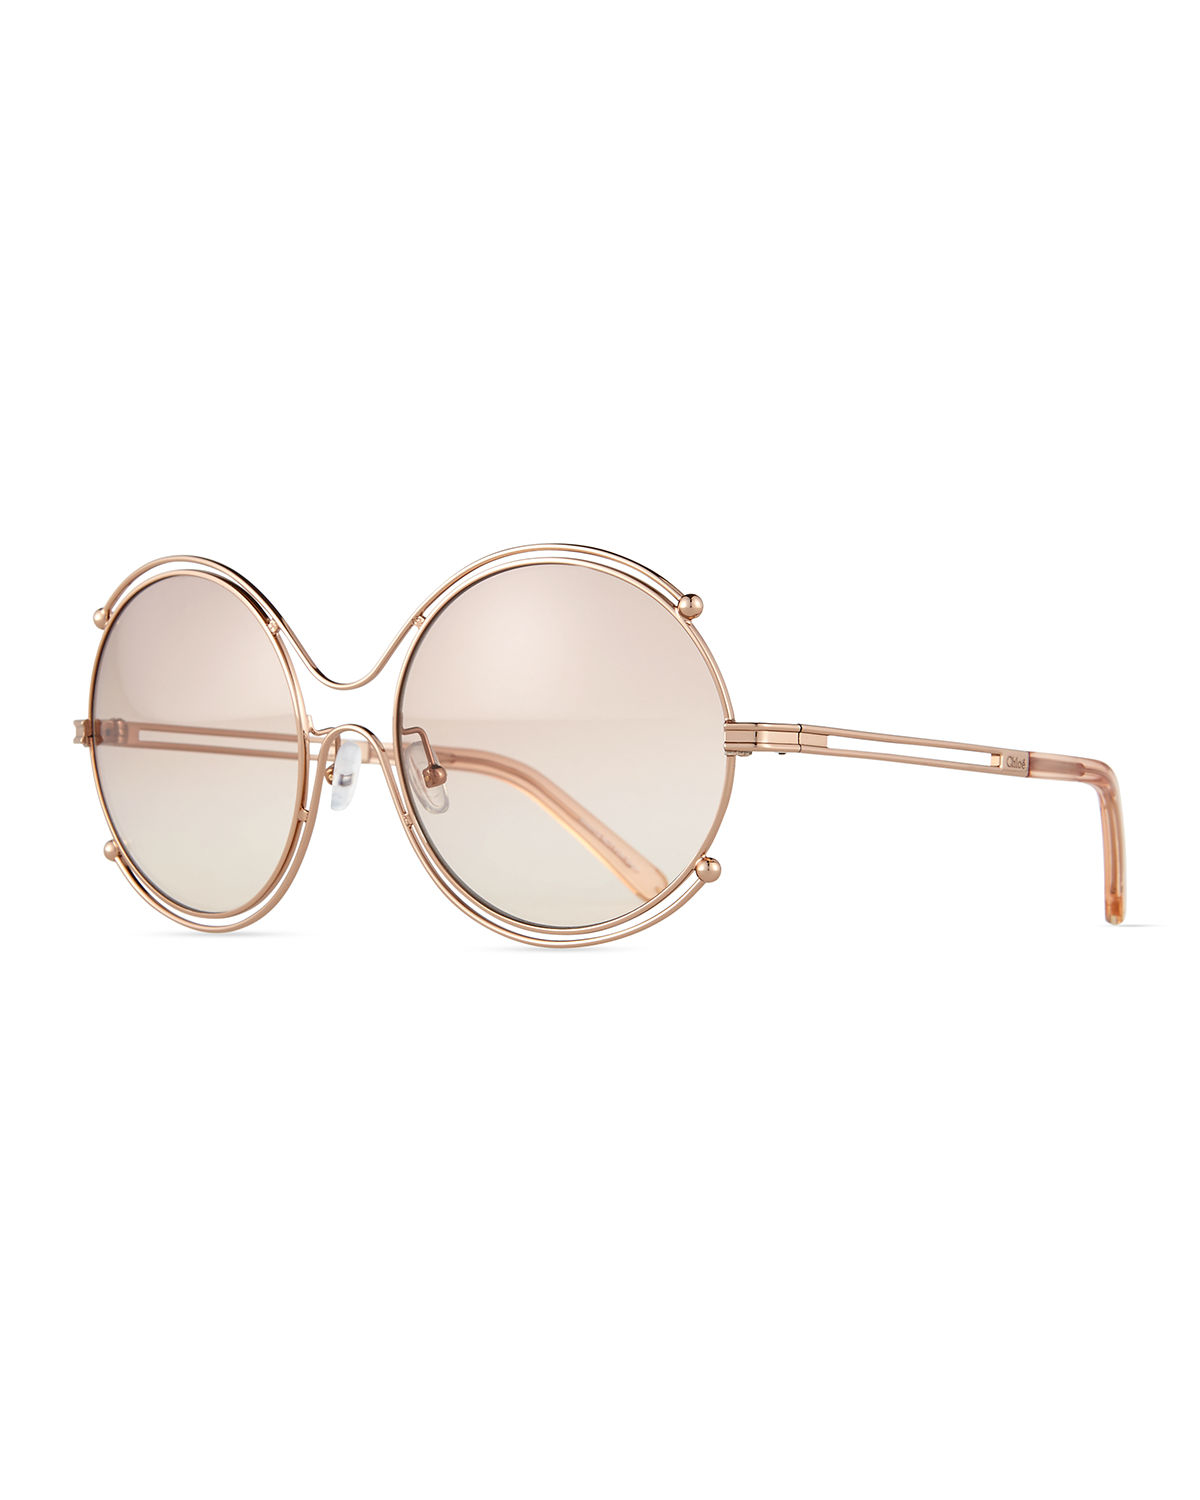 Chloe Gold Frame Sunglasses : Chloe Isidora Wire-rimmed Sunglasses in Pink (ROSE GOLD ...